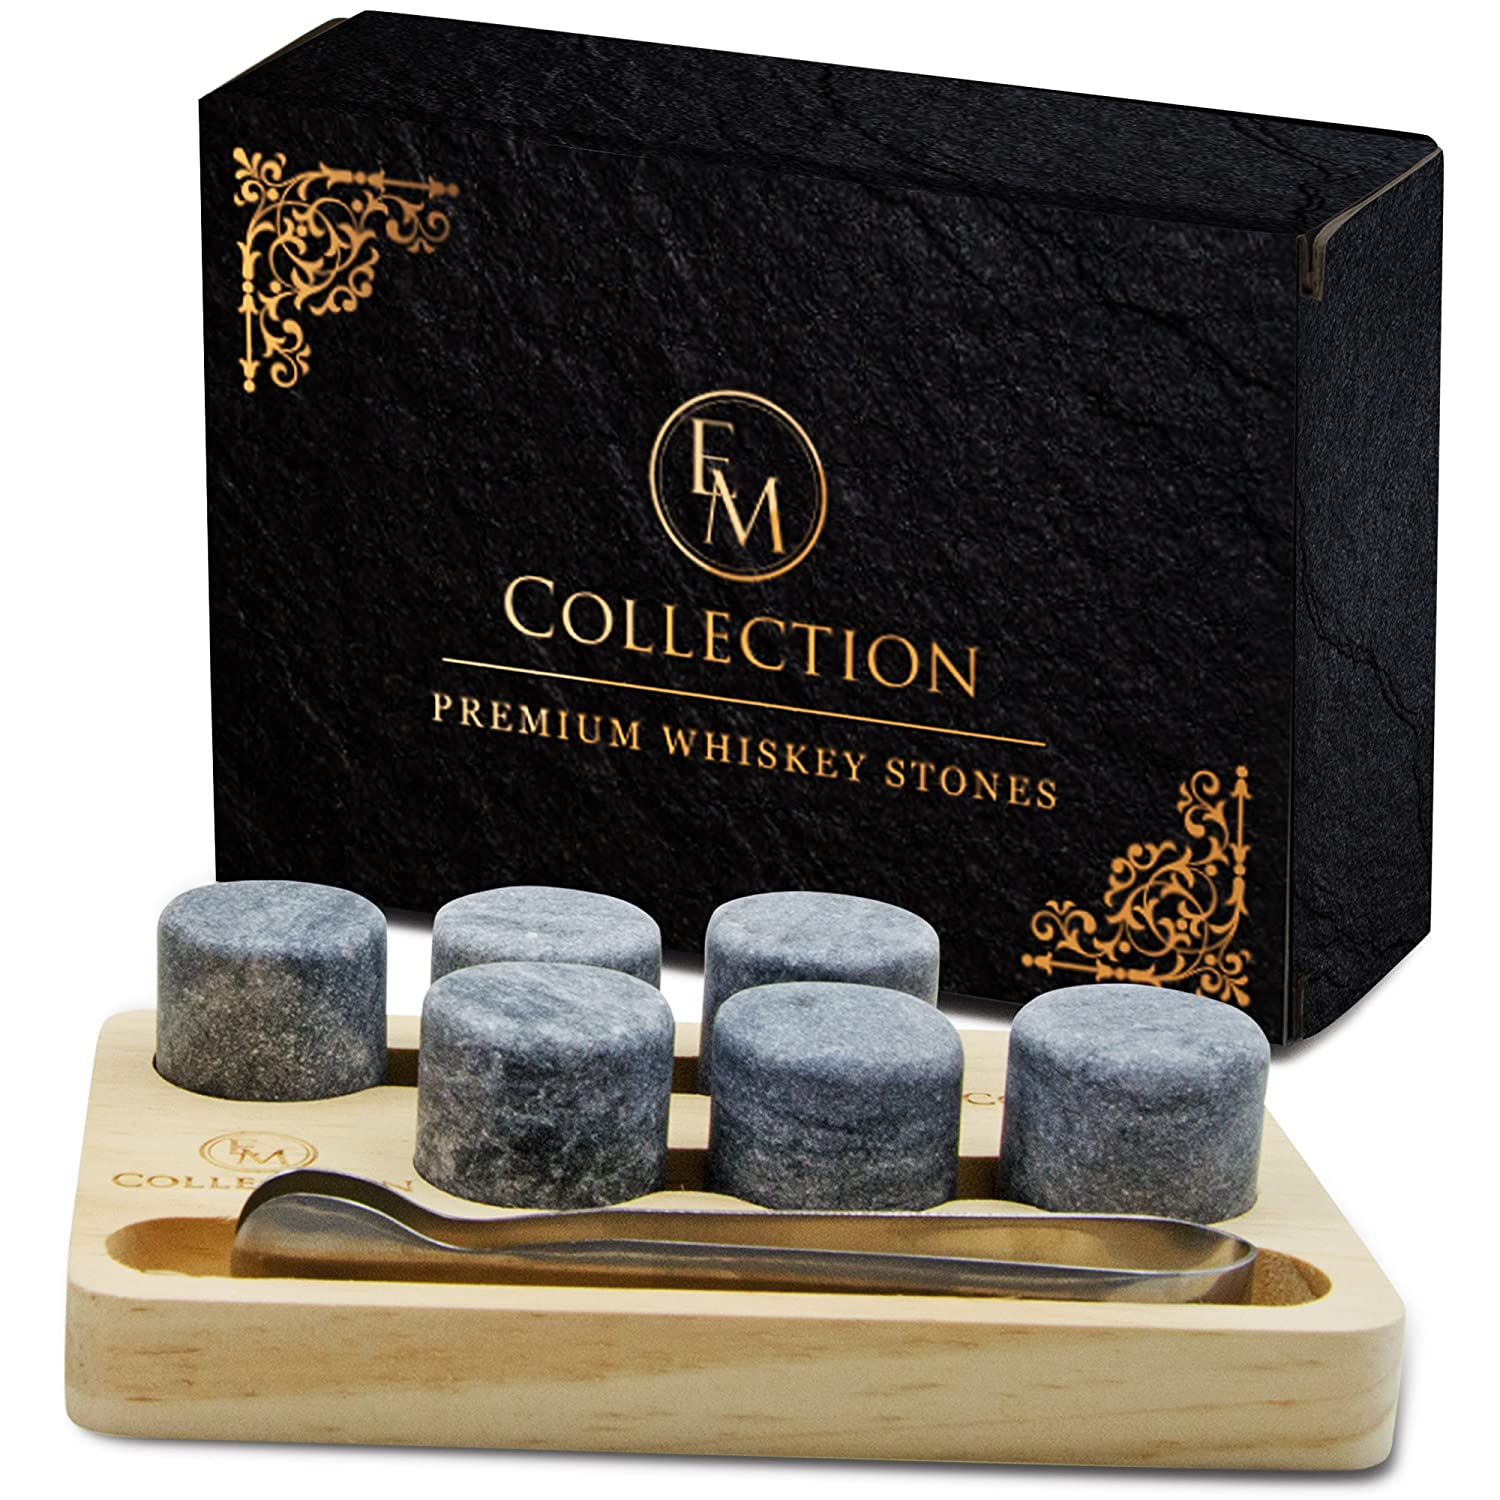 Whiskey Chilling Stones Gift Set of 6 w/Wooden Storage Tray & Forceps: Chill Any Beverage Without Dilution. Round Granite Rocks Cool a Cocktail or Scotch Better Than Ice Cubes or Soapstone EMcollection